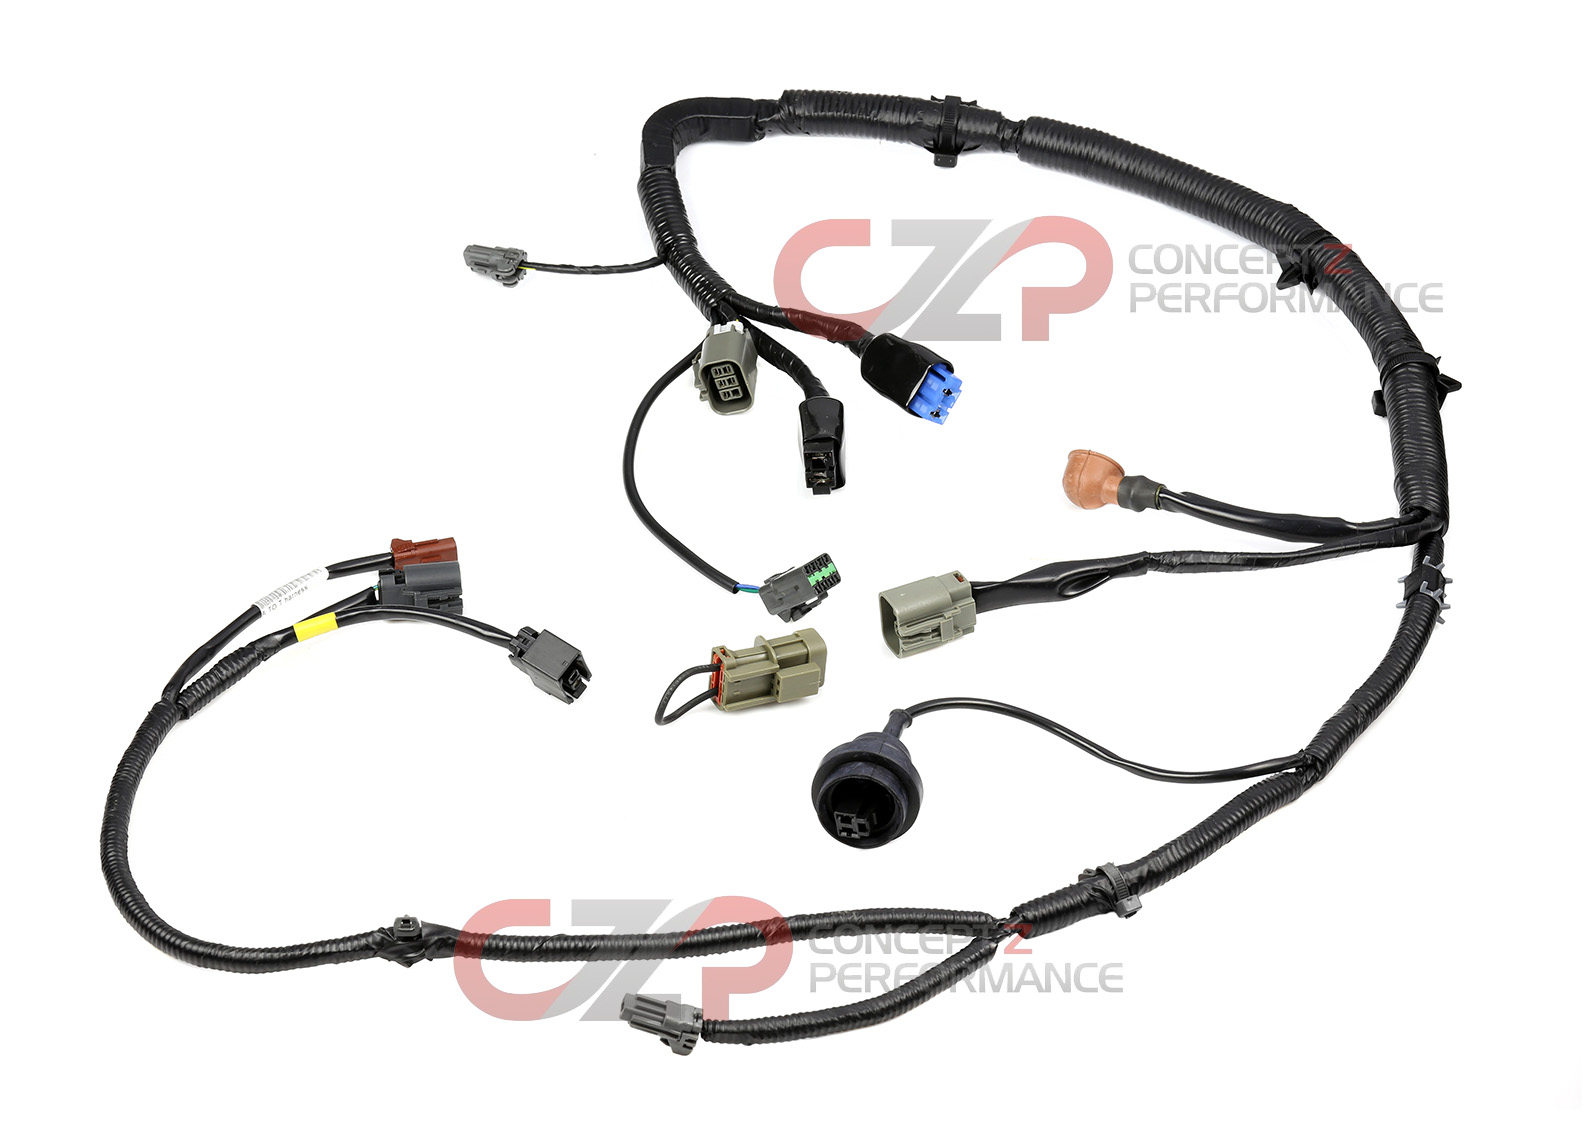 wiring specialties wrs z32tran atmt alternator to transmission wiring specialties wrs z32tran atmt alternator to transmission harness at>>mt conversion nissan 300zx z32